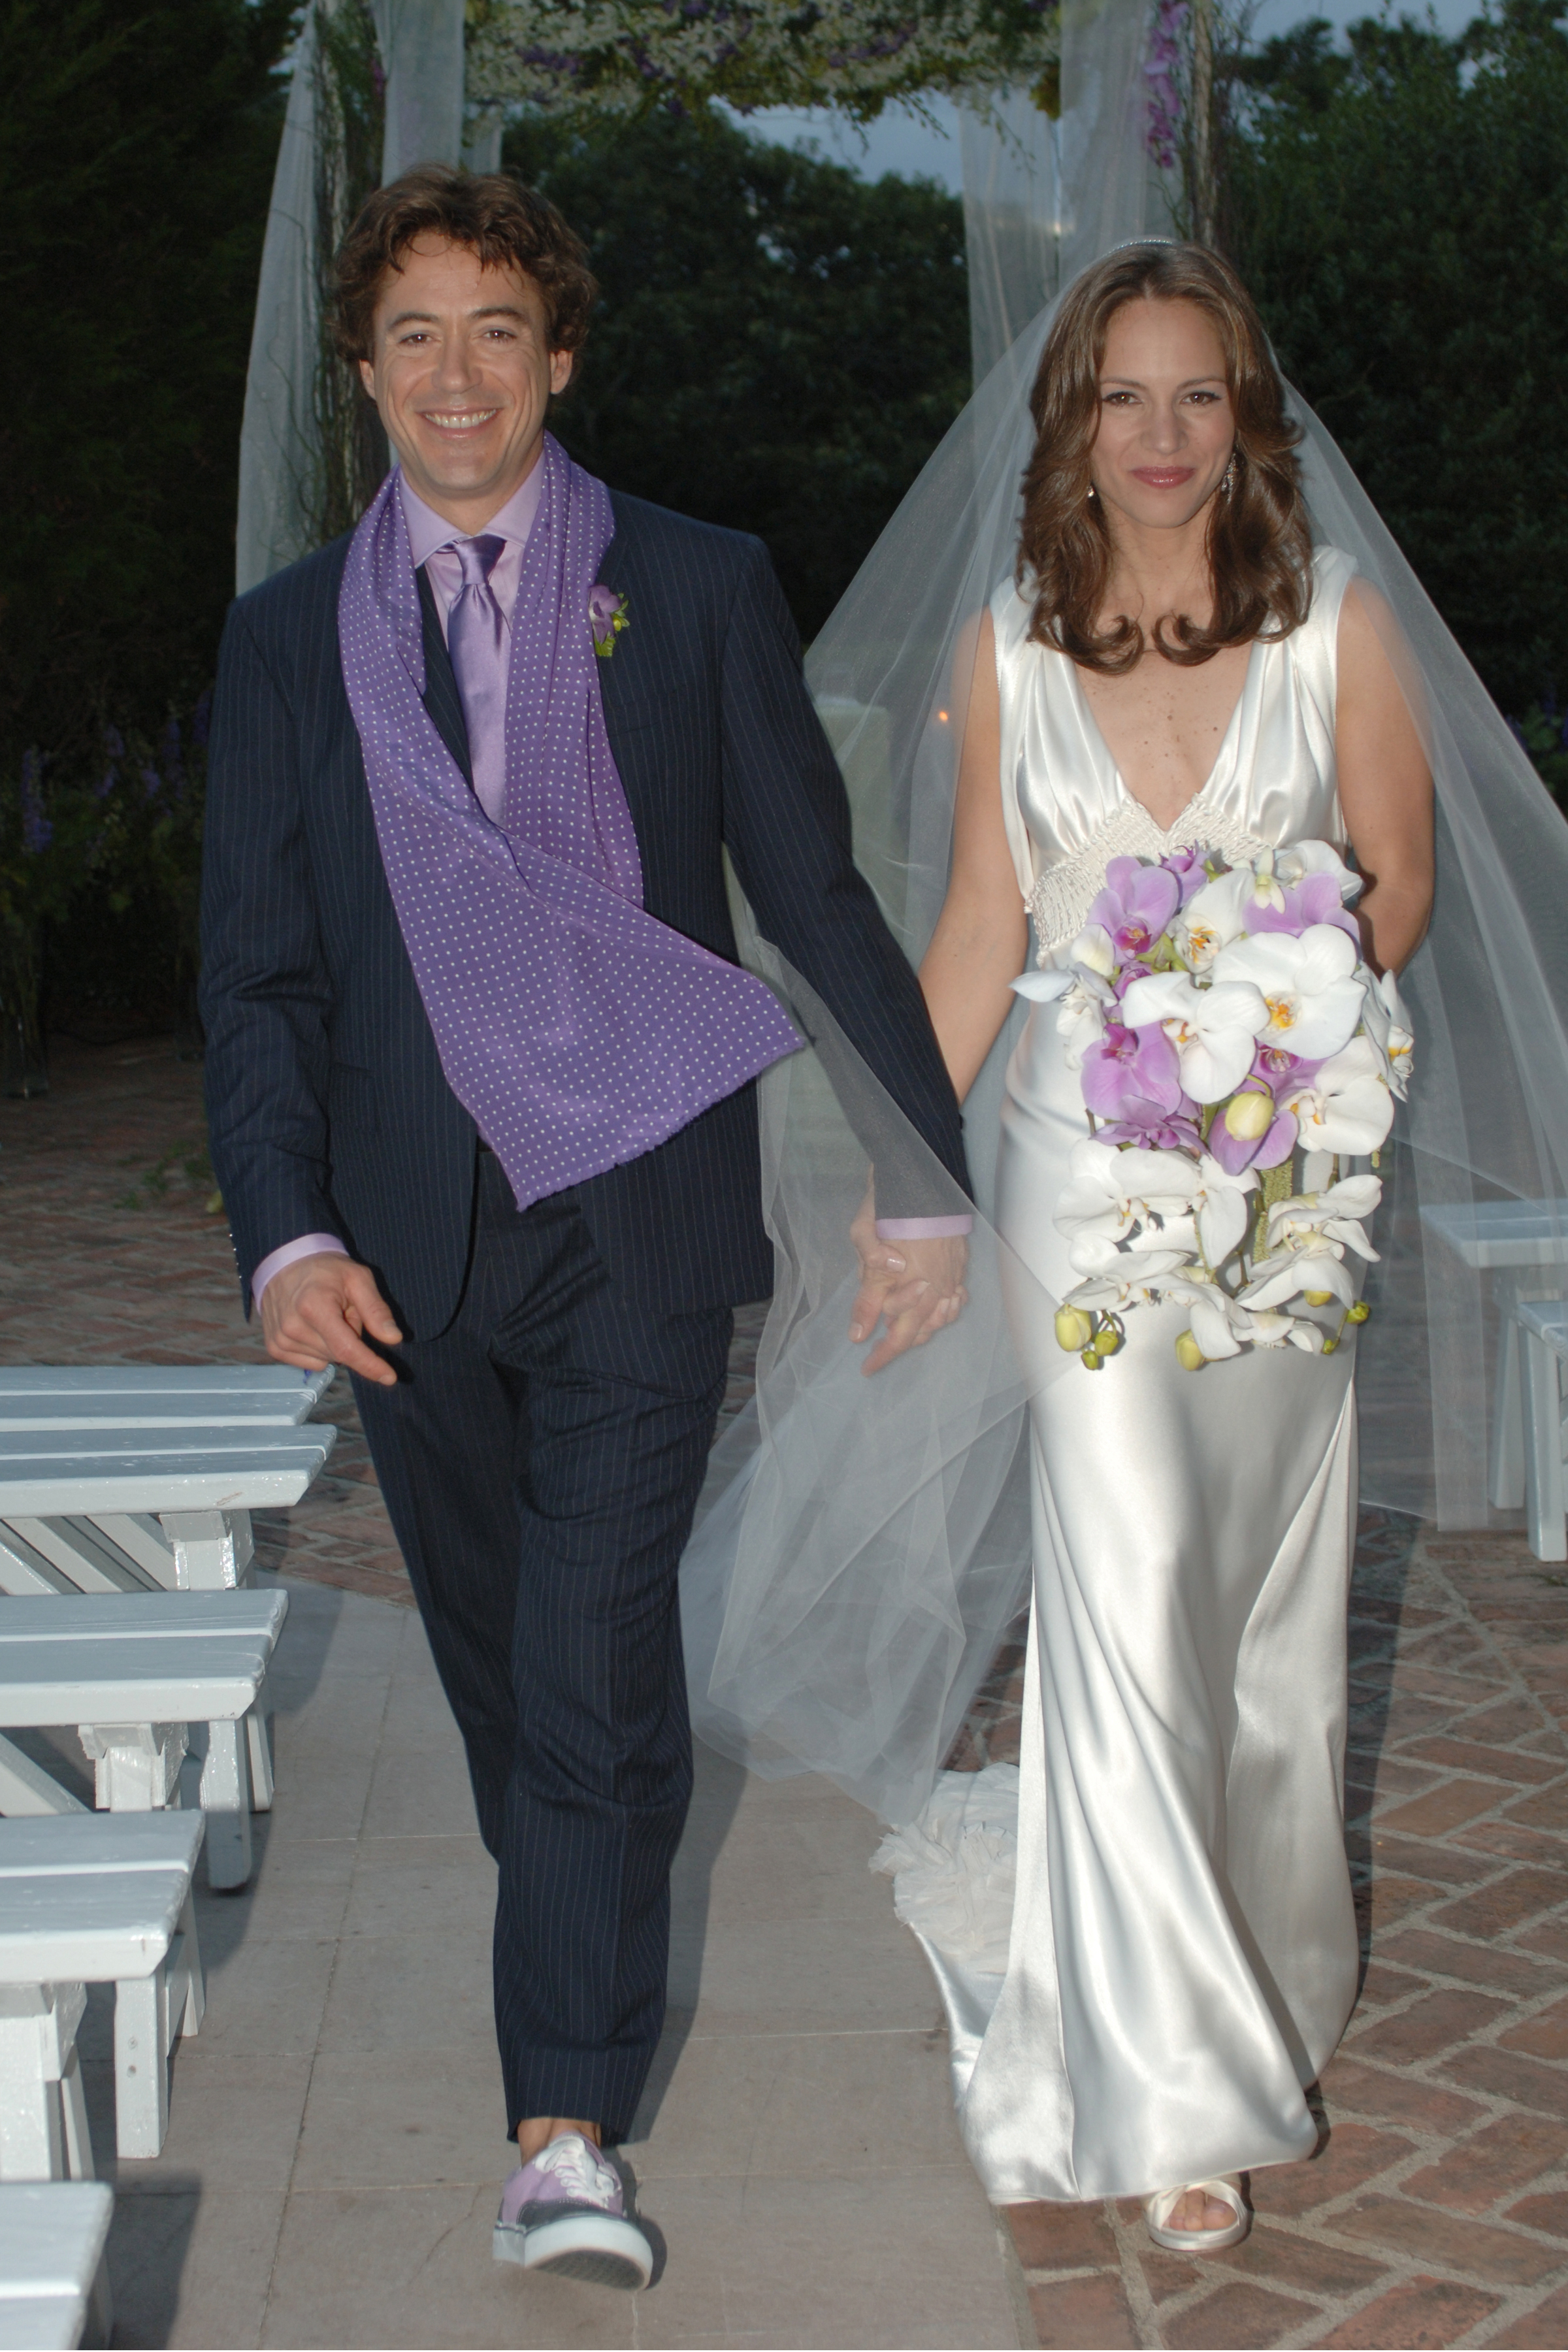 Robert Downey Jr. and Susan Levin are pictured at their wedding in  Amagansett, NY, in August 2005.